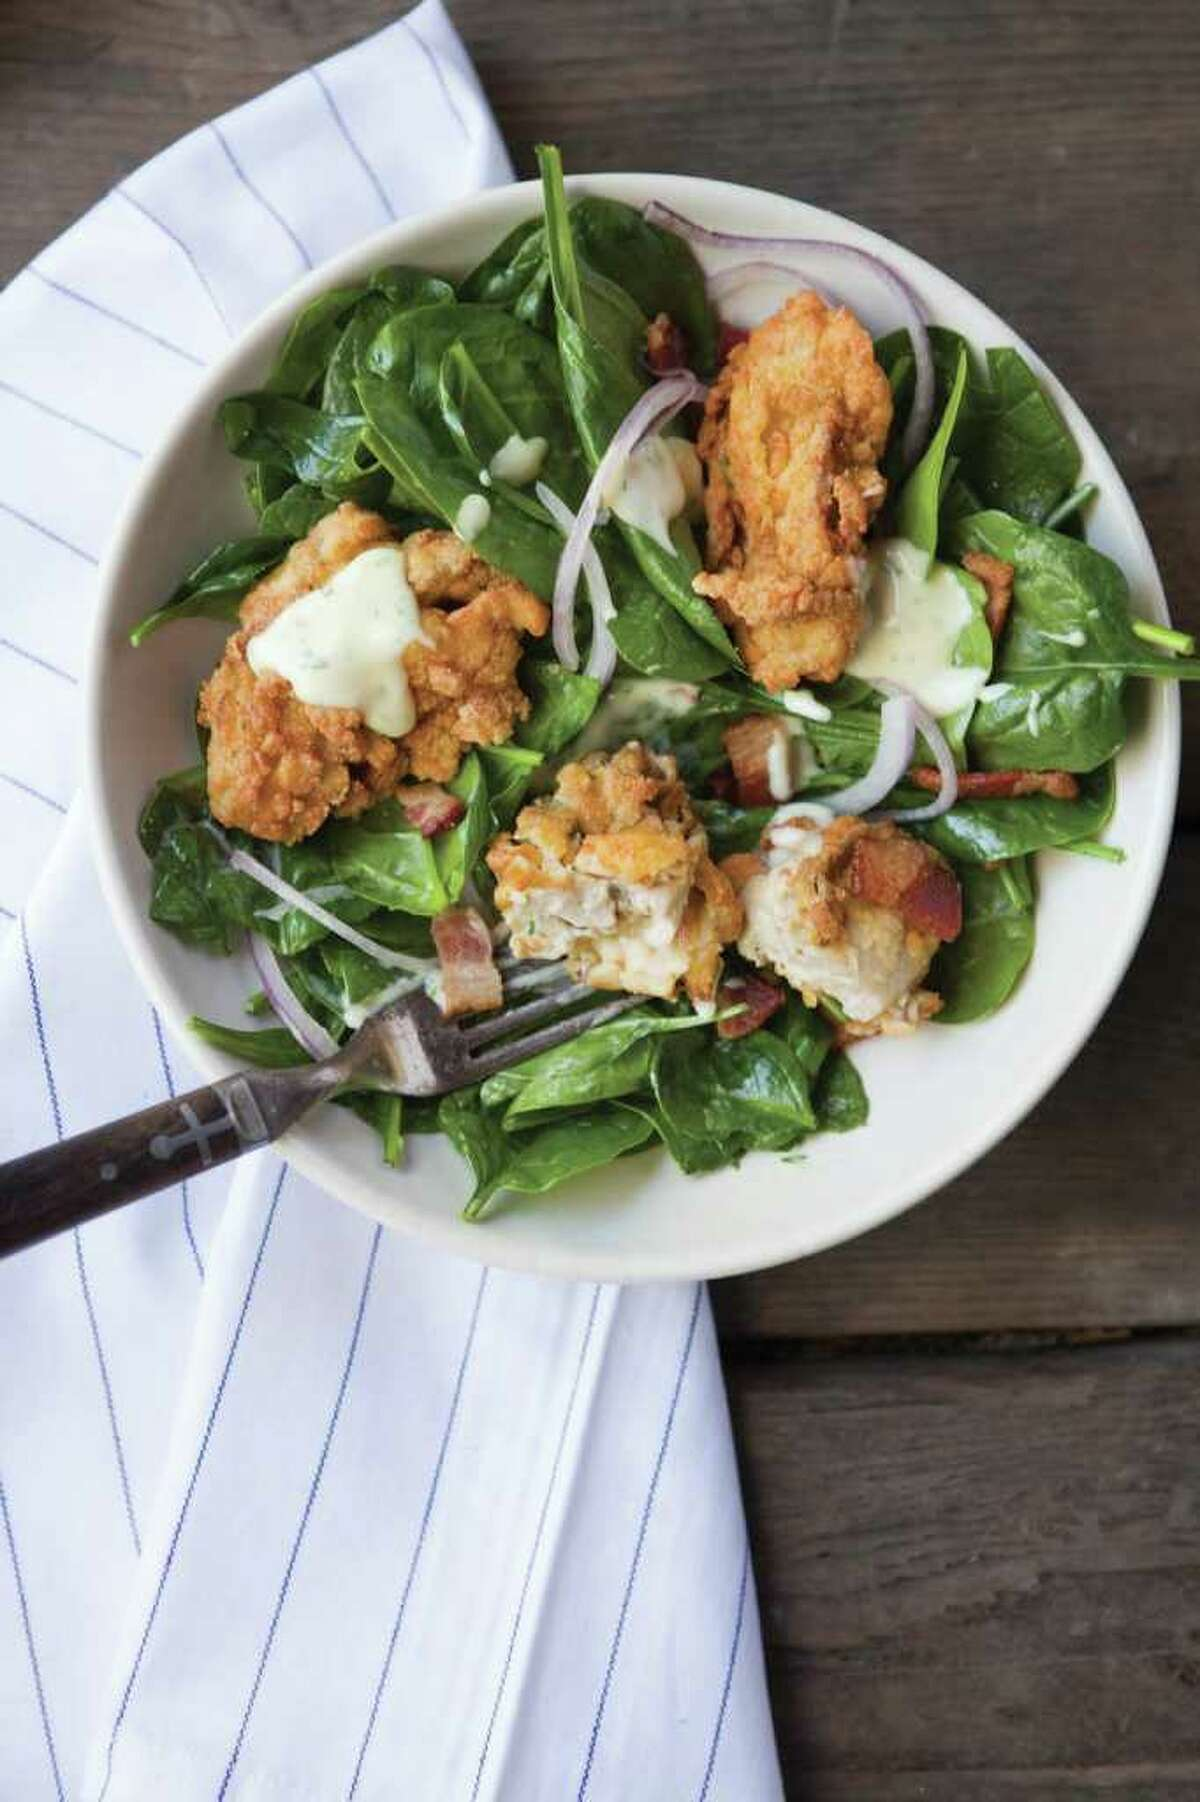 Get the recipe: Fried oysters with spinach salad and herbsaint dressing